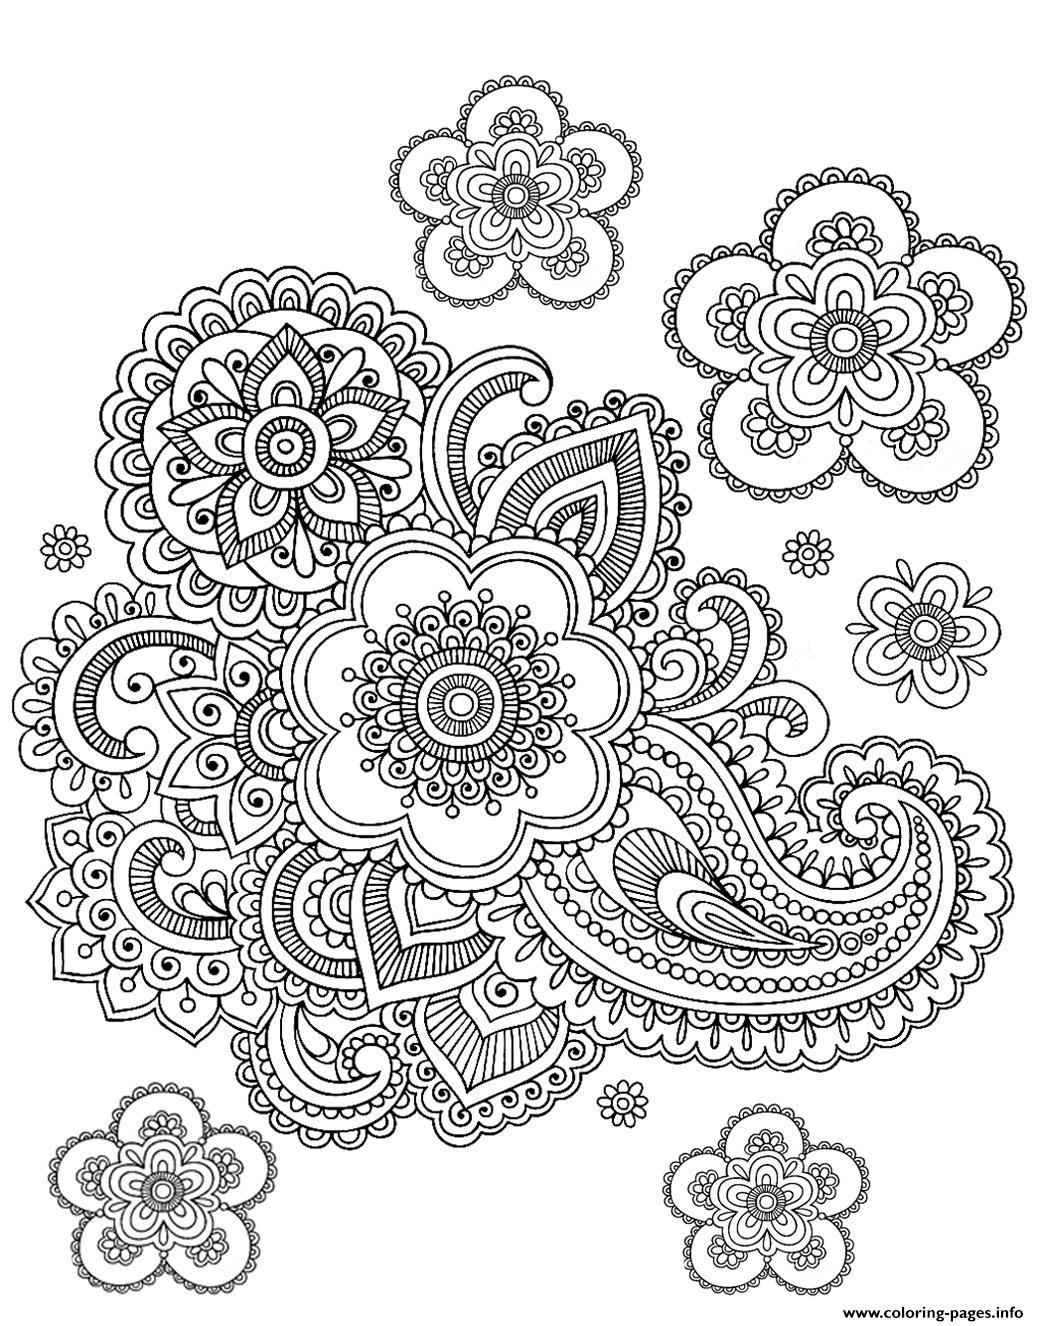 Zen Antistress Free Adult 18 Coloring Pages Print Download 581 Prints